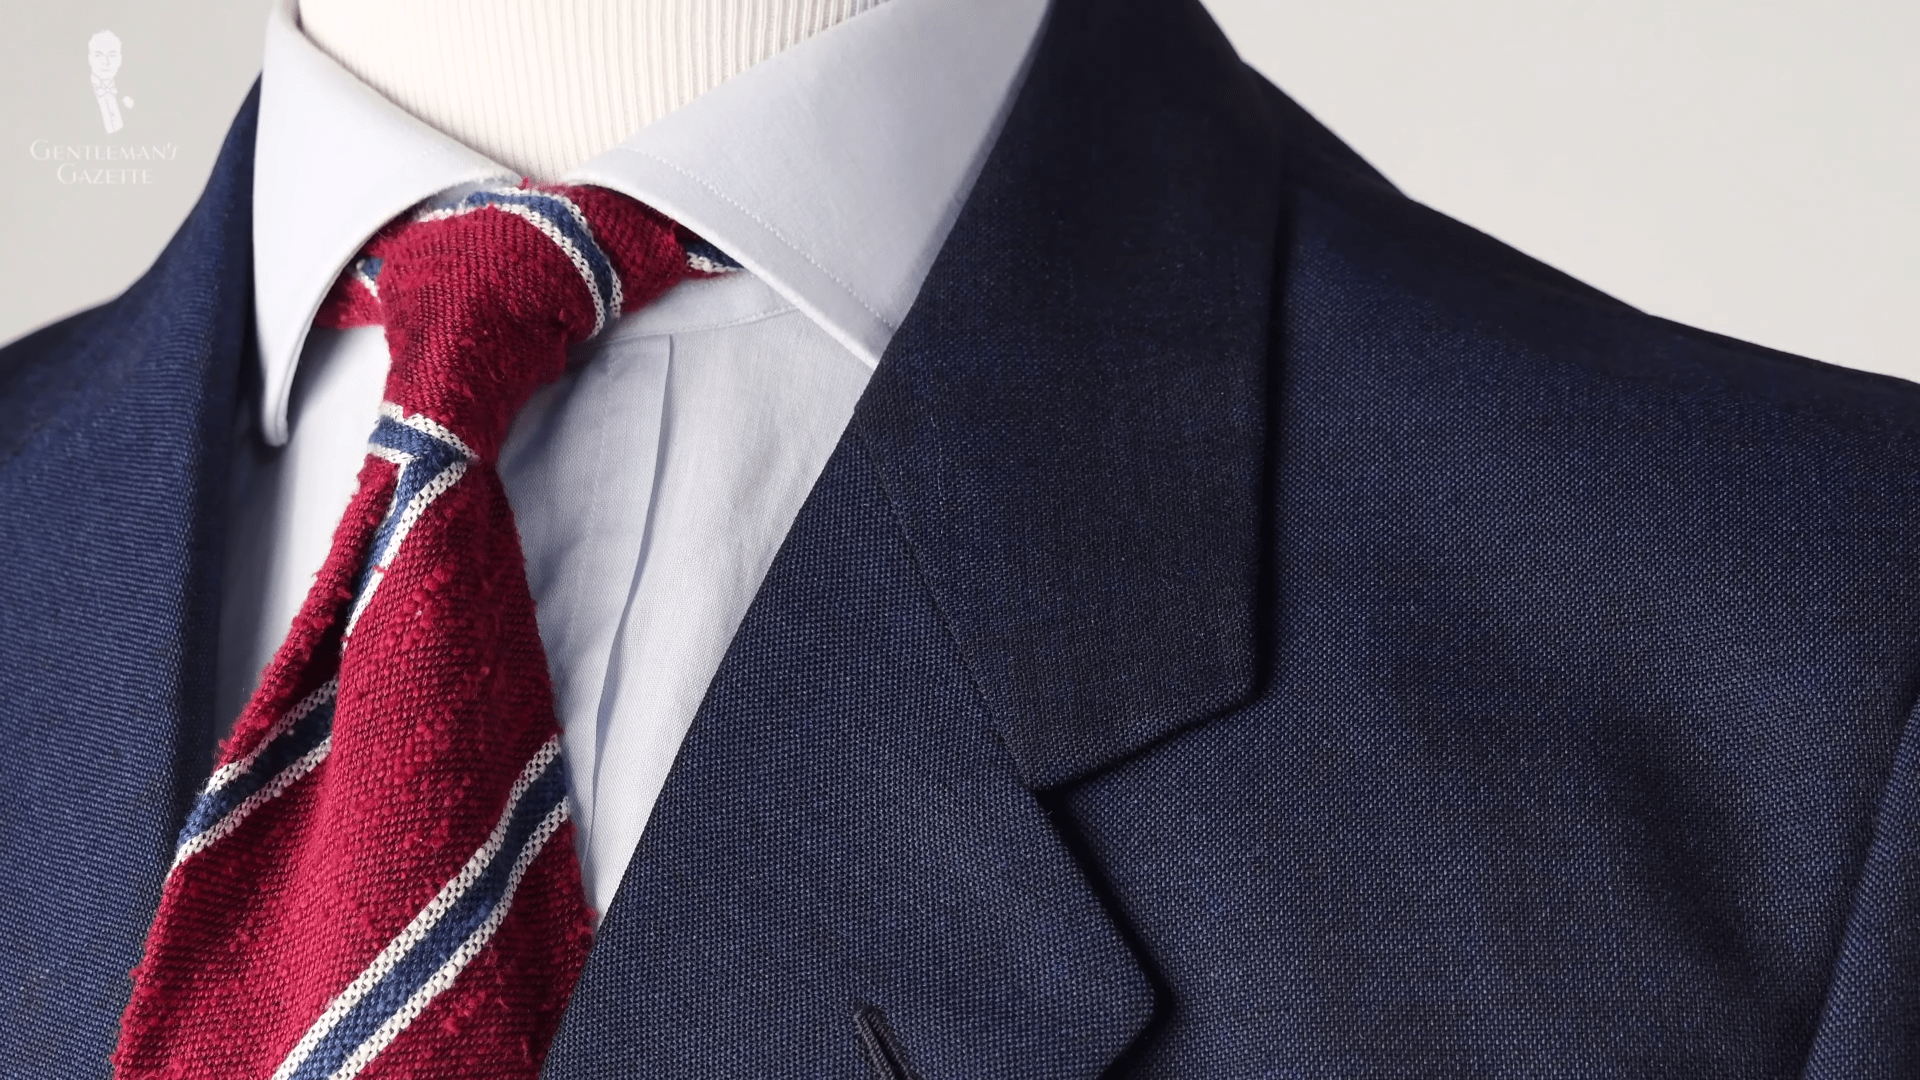 A blue jacket, pale blue shirt, and shantung striped tie in red, blue, and white